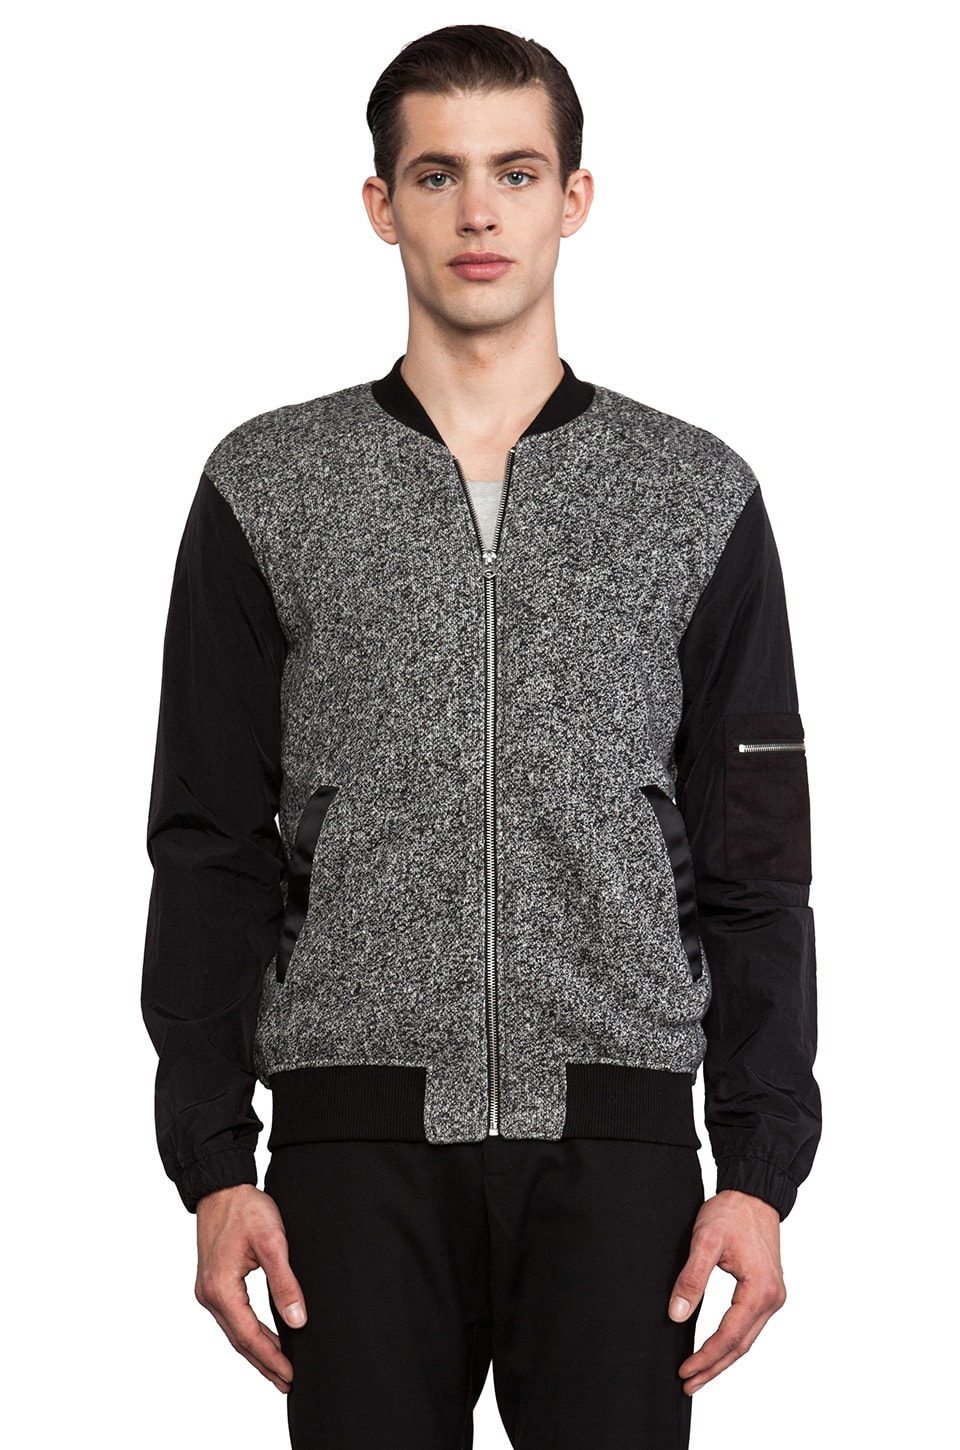 Shades of Grey by Micah Cohen Baseball Jacket in Blackboard & Black